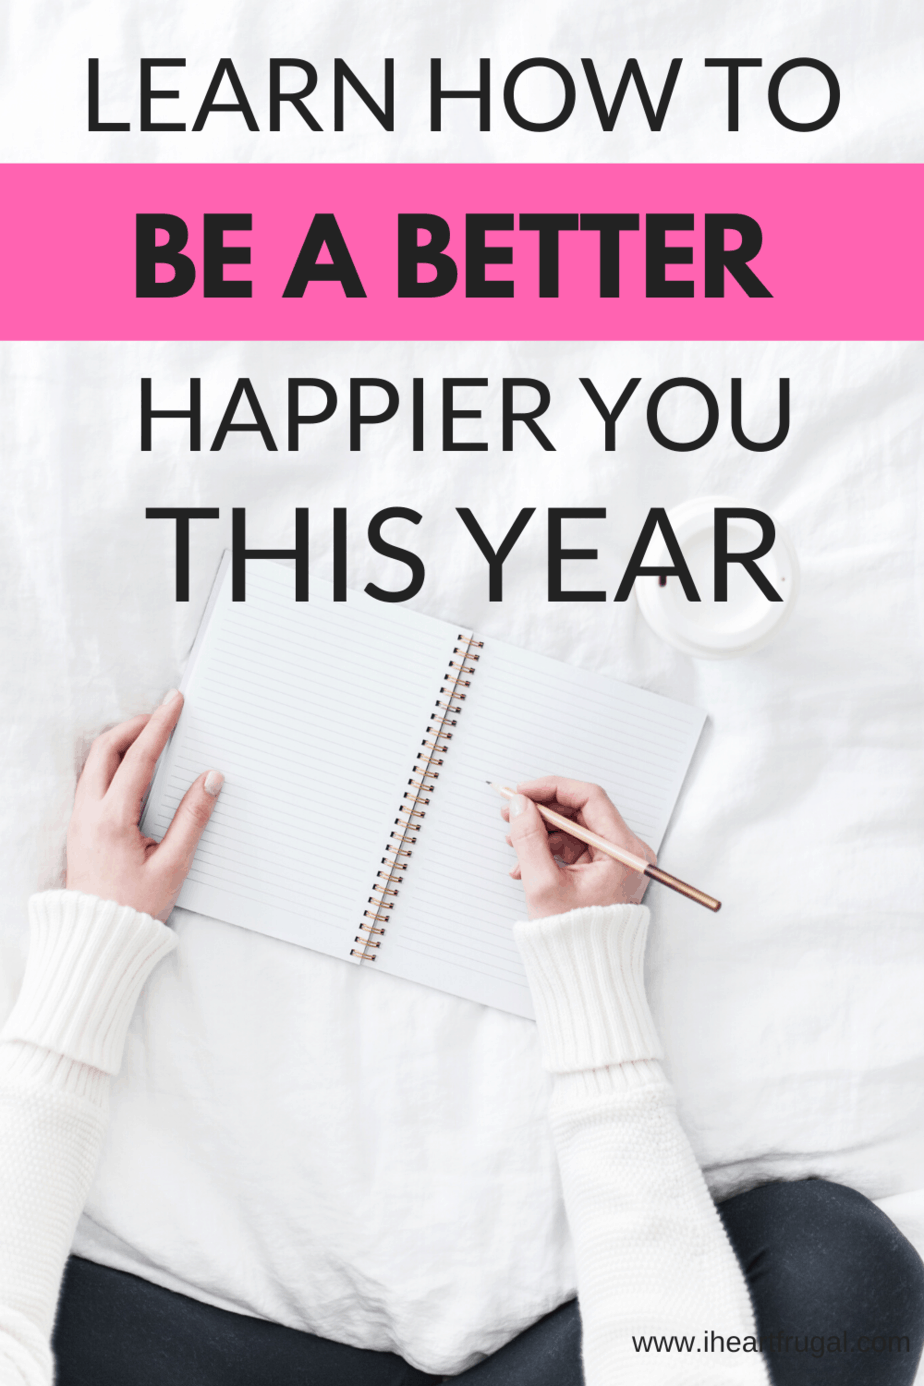 How to be a better happier you this year